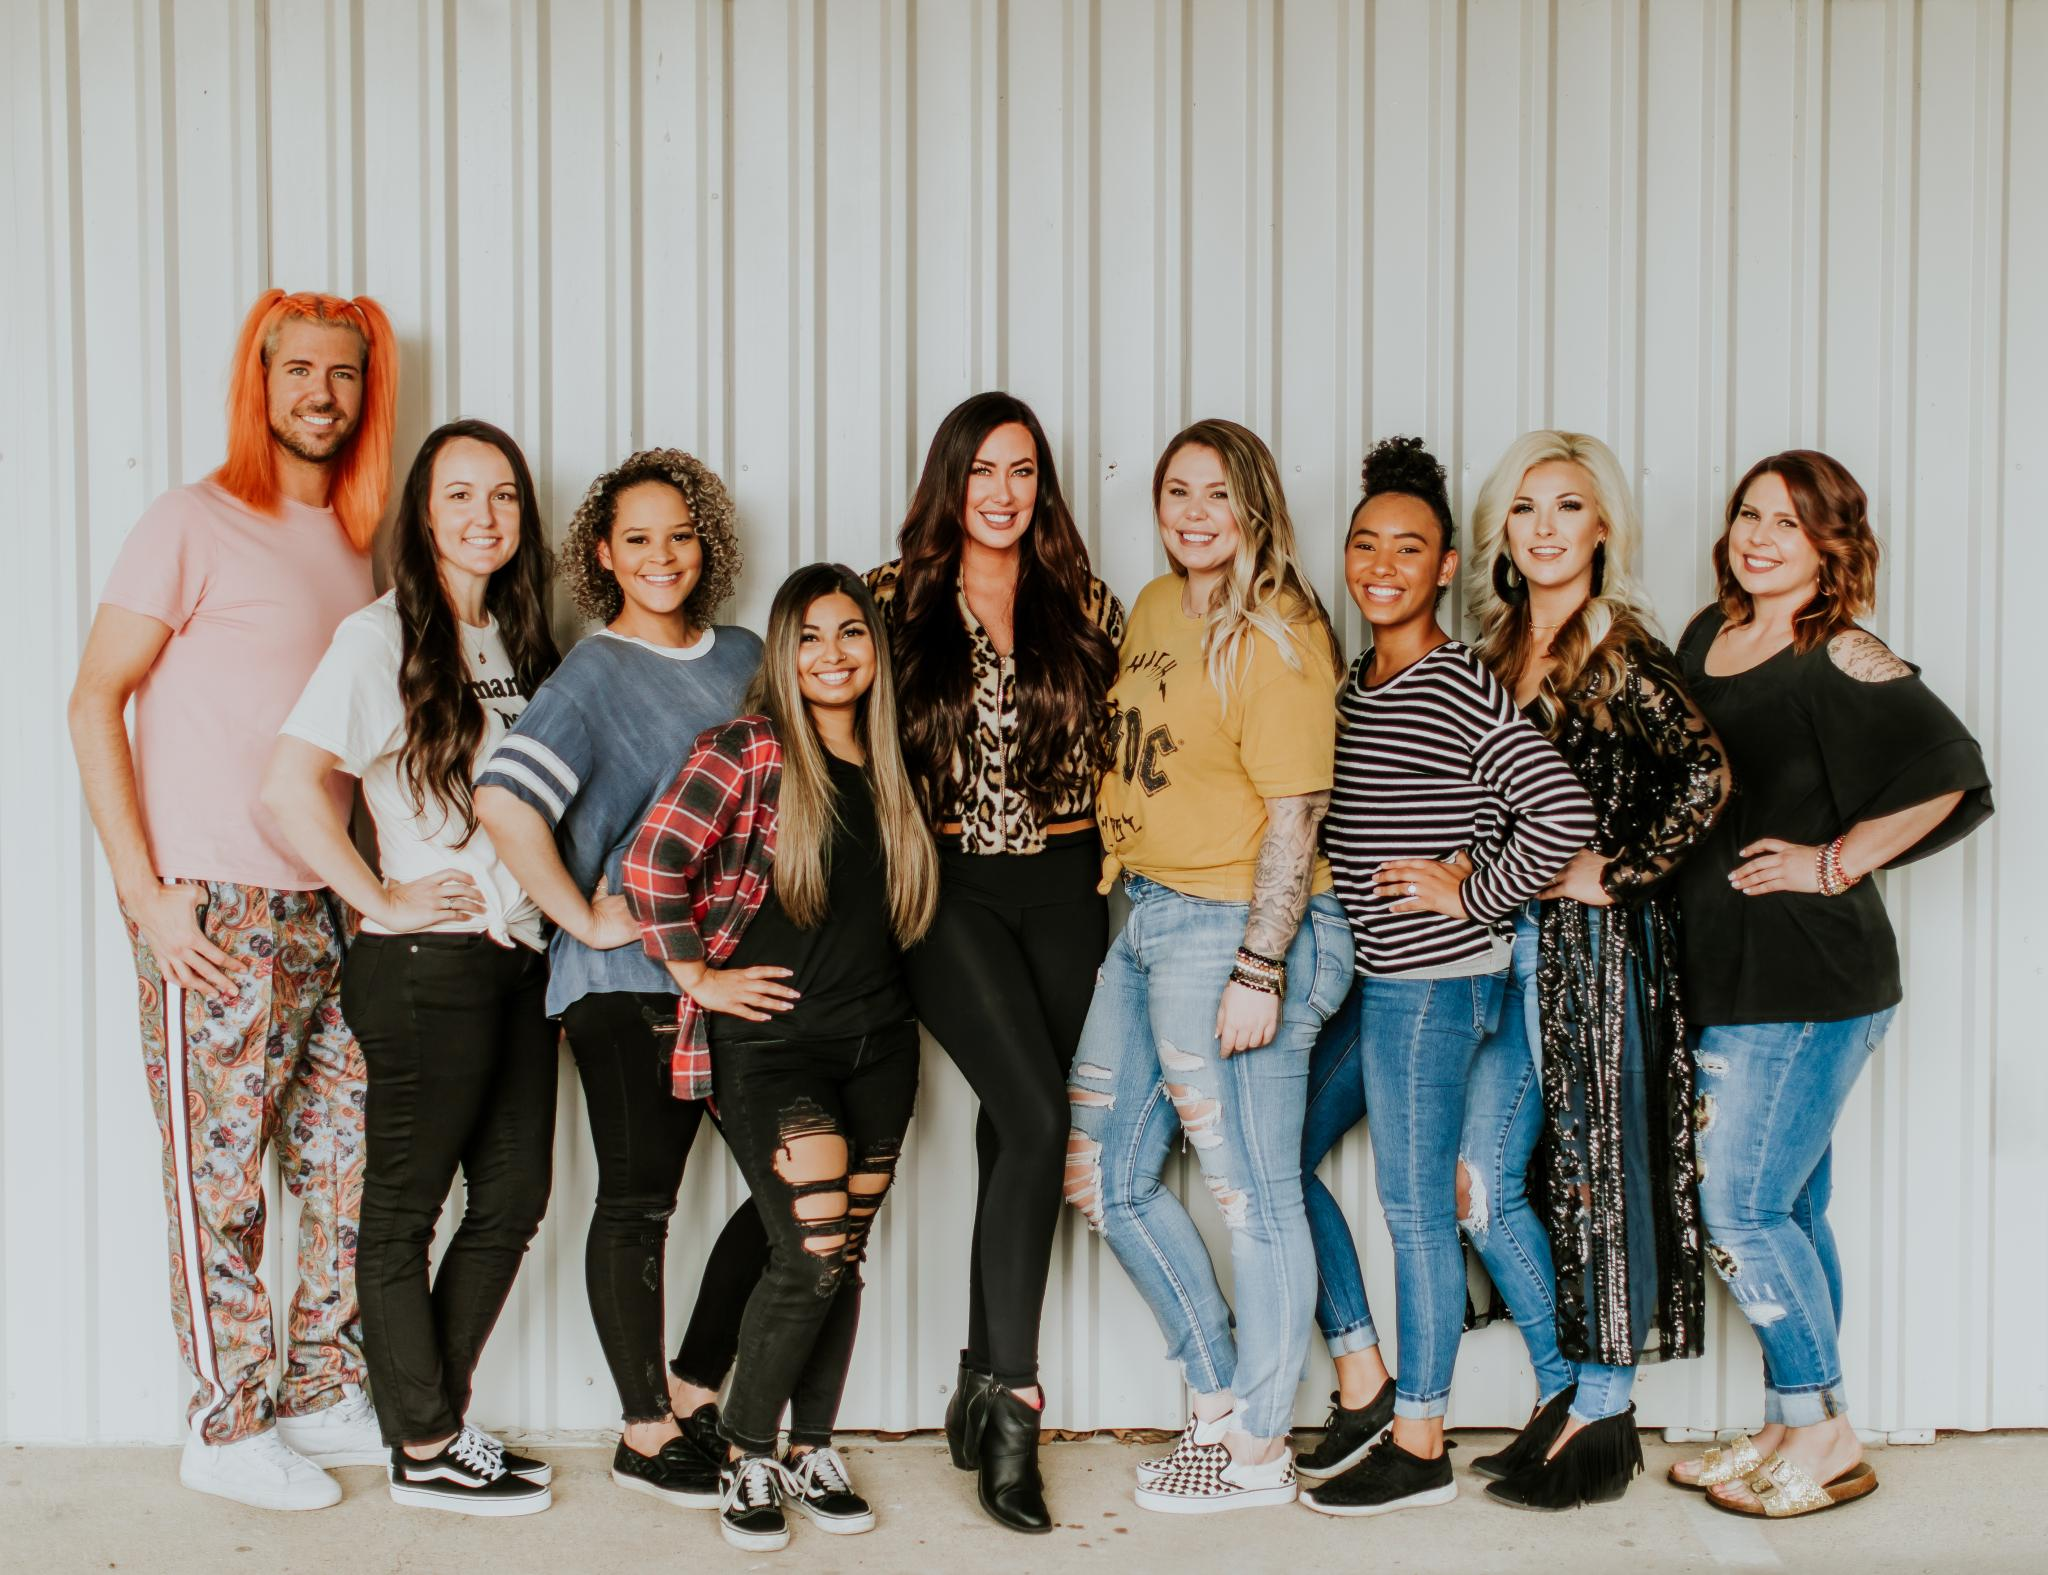 Pothead Hair Care's Hair Models - Picture by Ciarra C. Photography